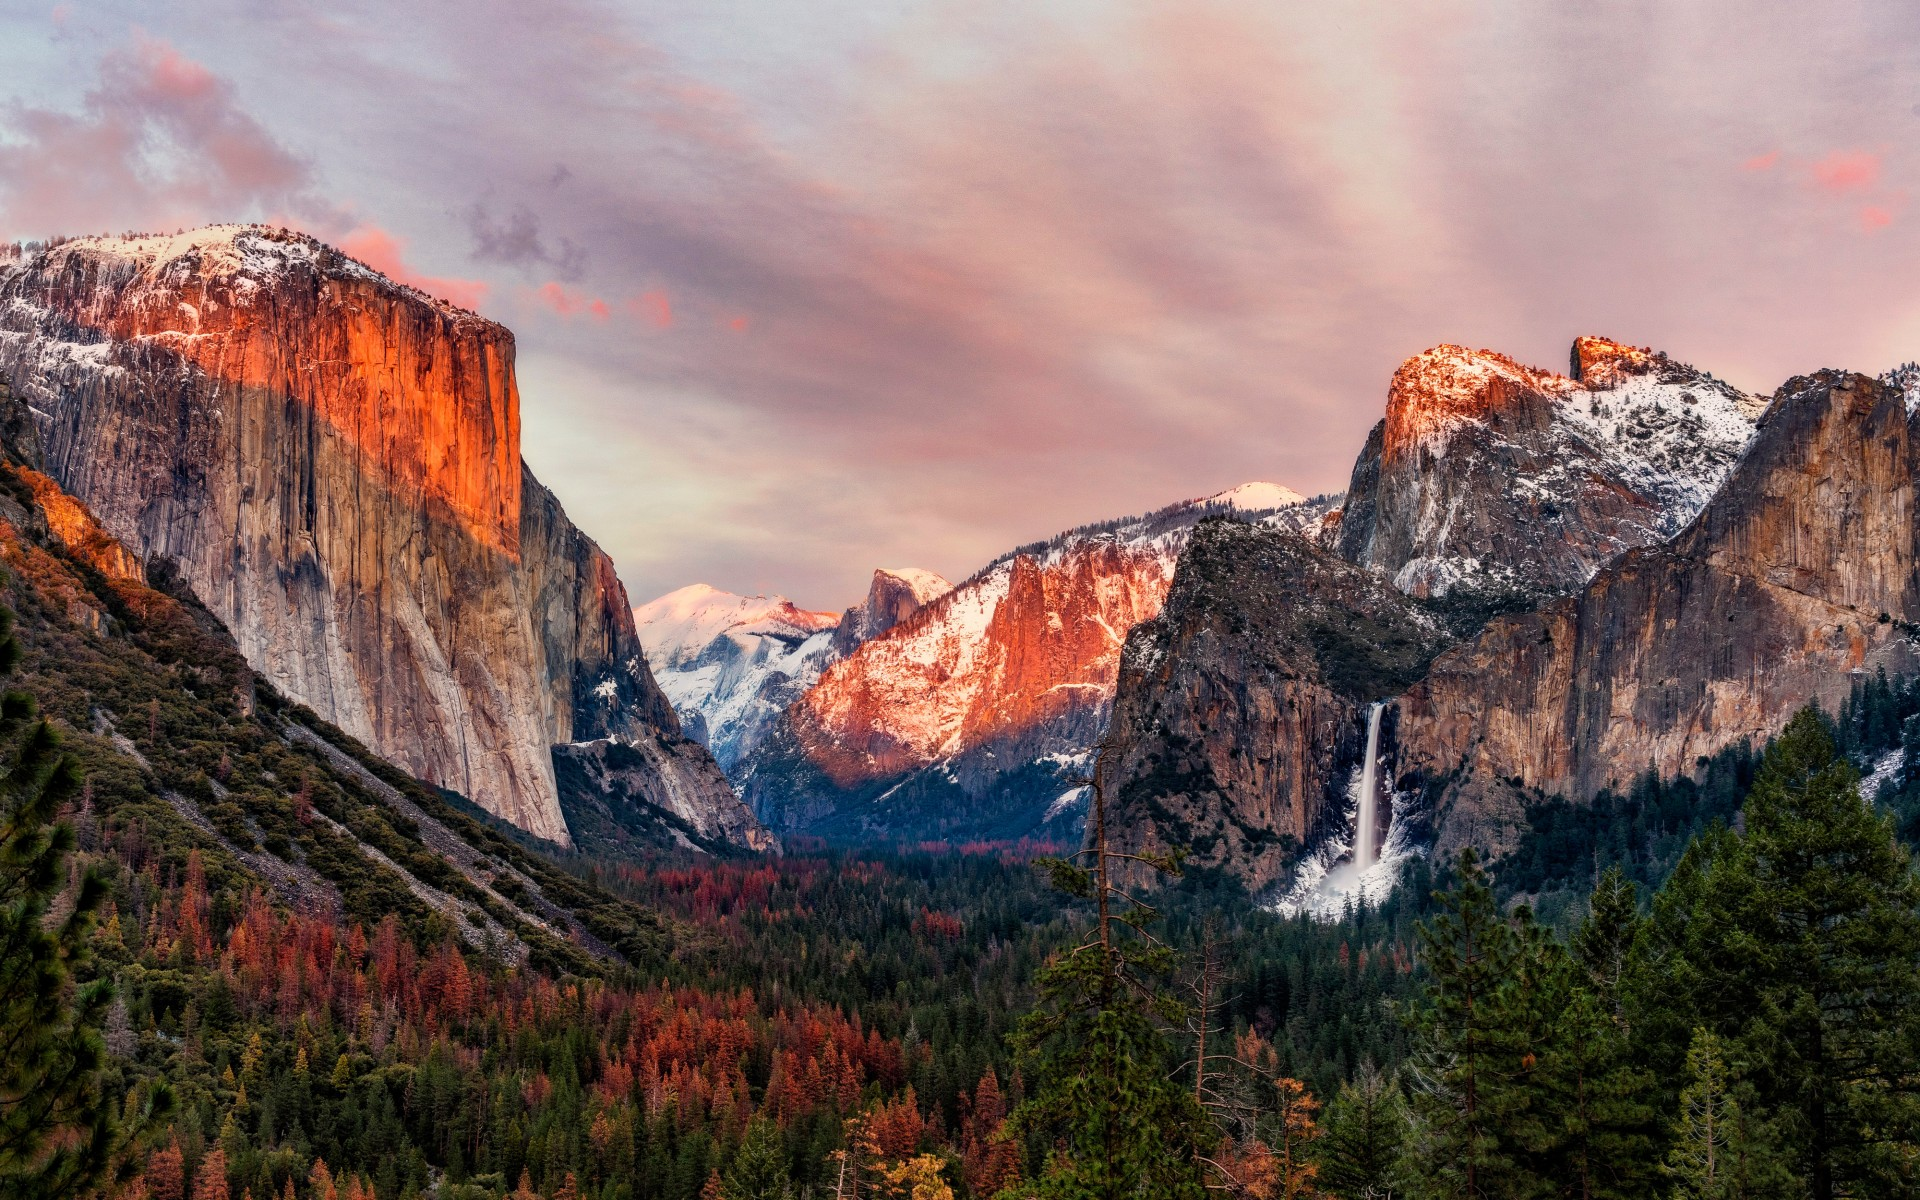 Latest Wallpapers Cars And Bikes El Capitan Yosemite Valley 4k Wallpapers Hd Wallpapers